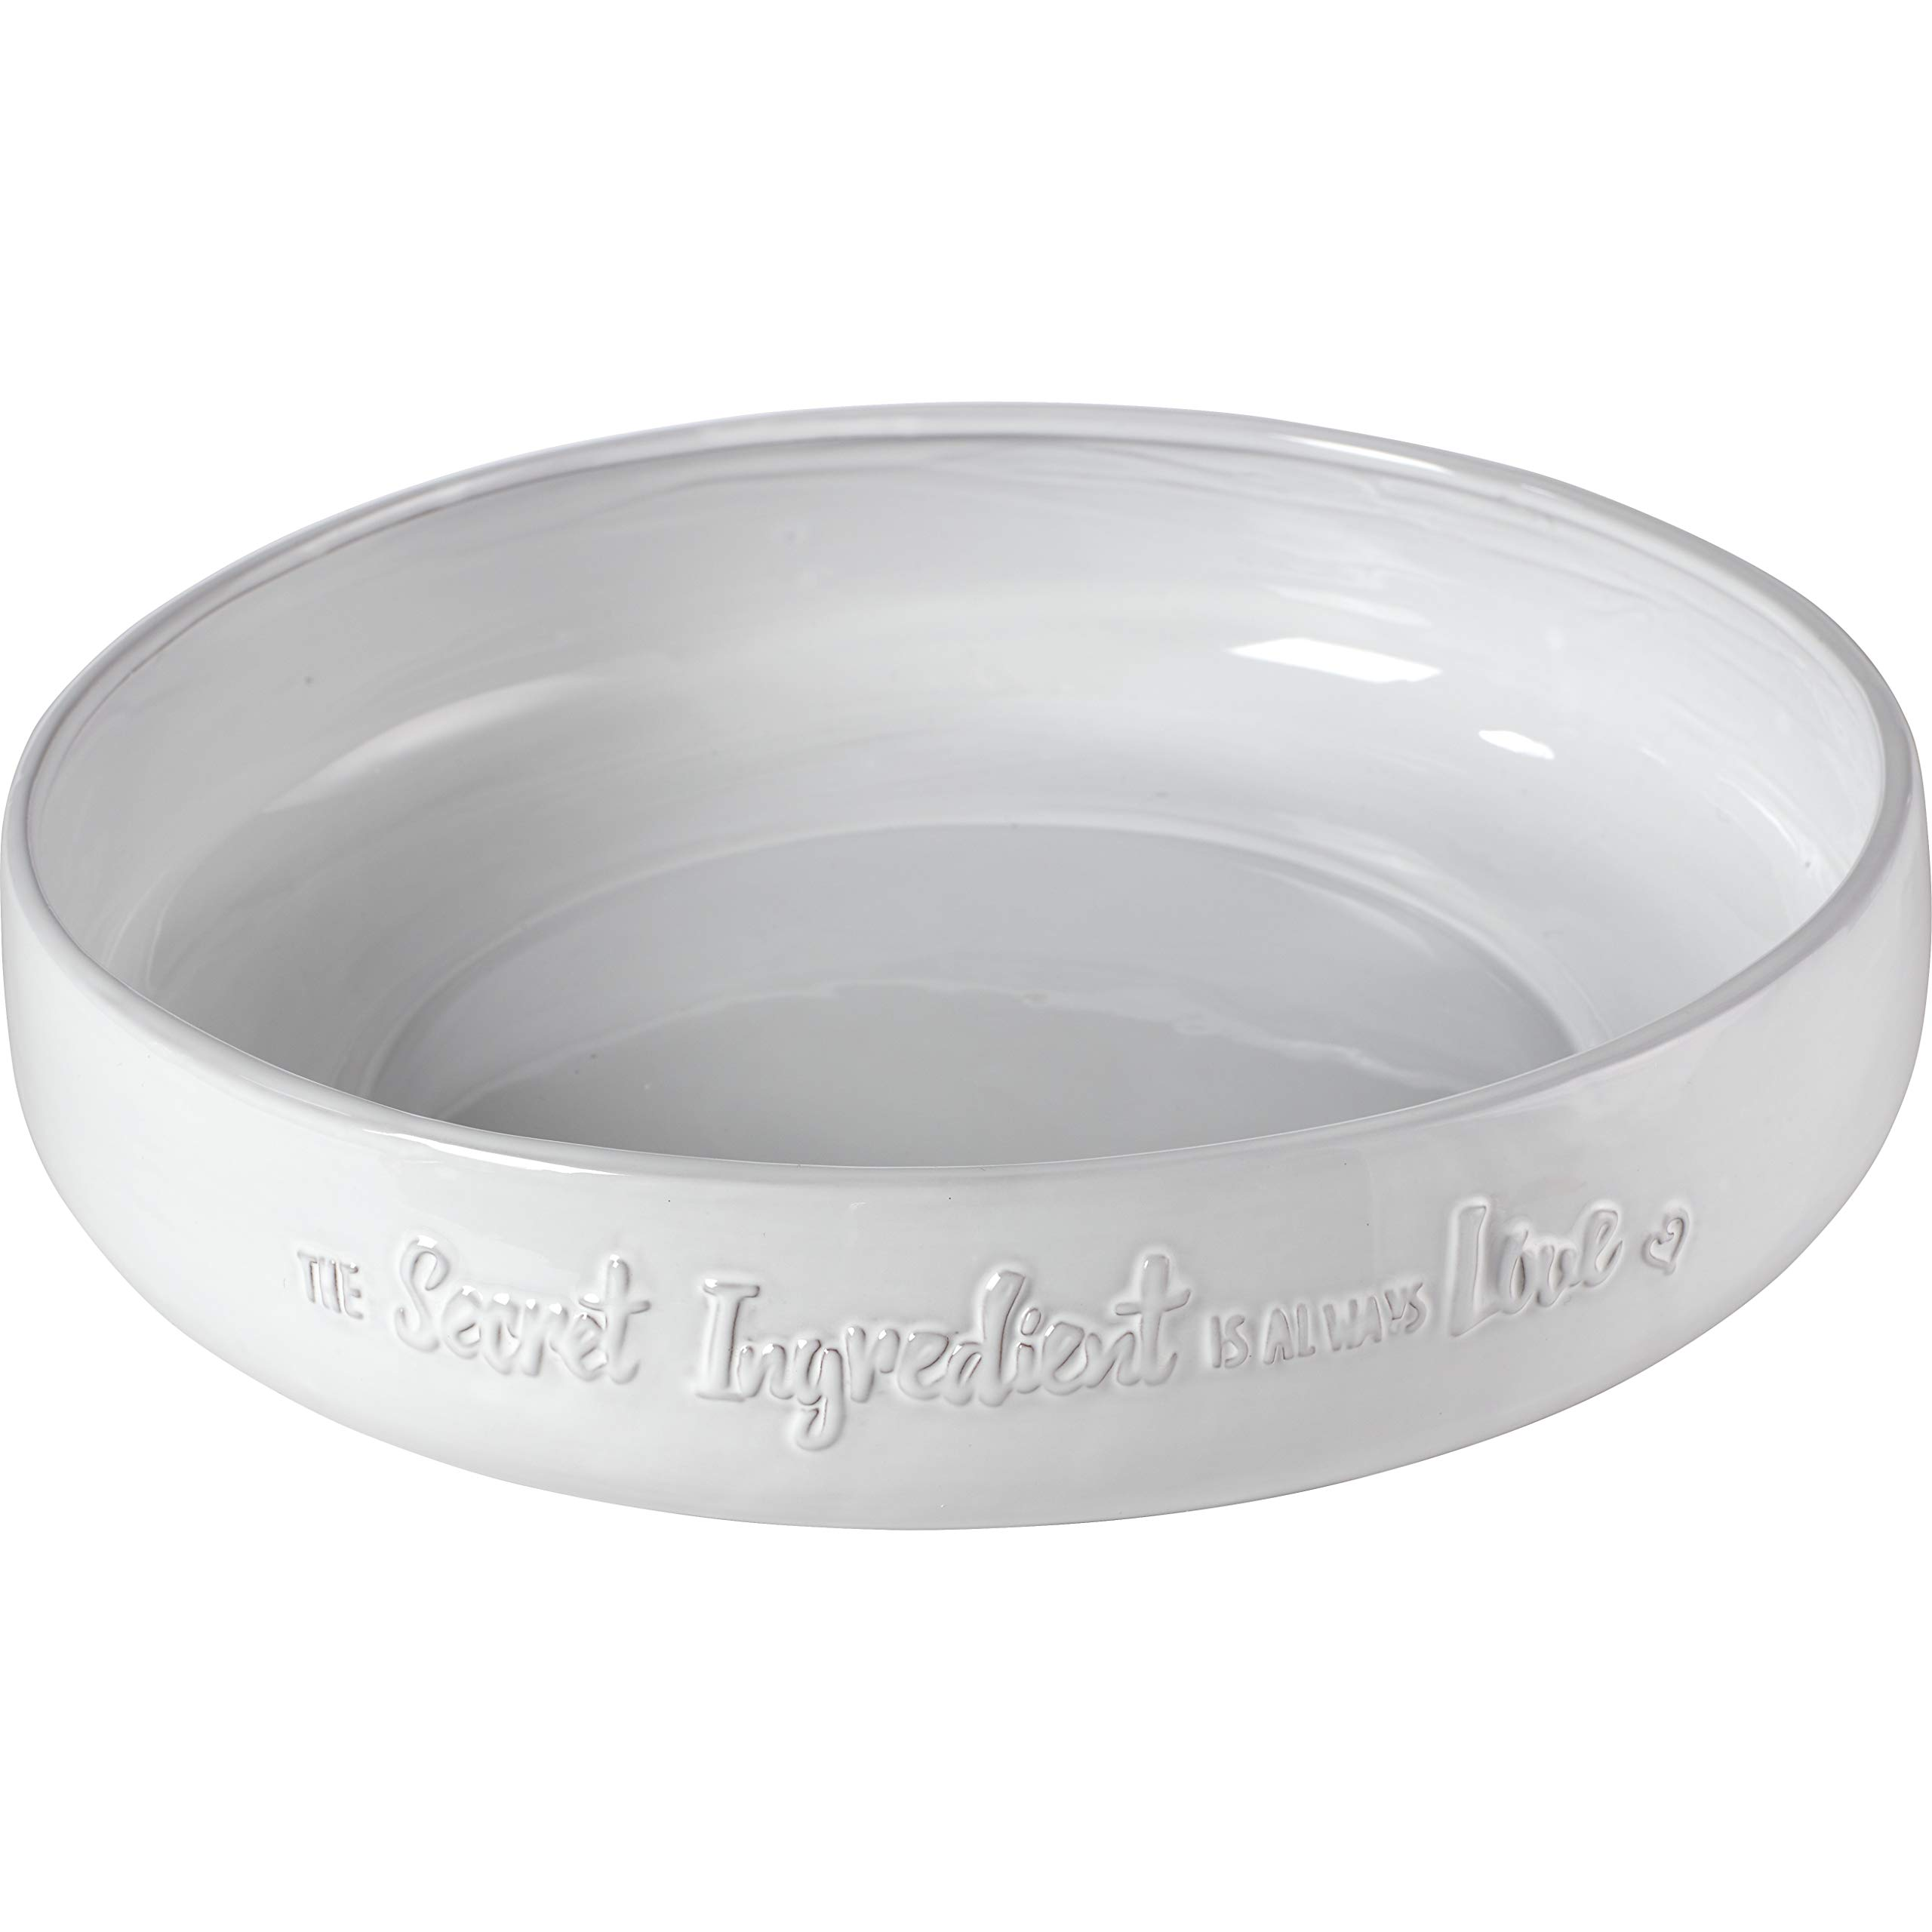 Bountiful Blessings by Precious Moments 189901 The Secret Ingredient is Always Love Round Serving Bowl, 12-inch Diameter, White/Cream